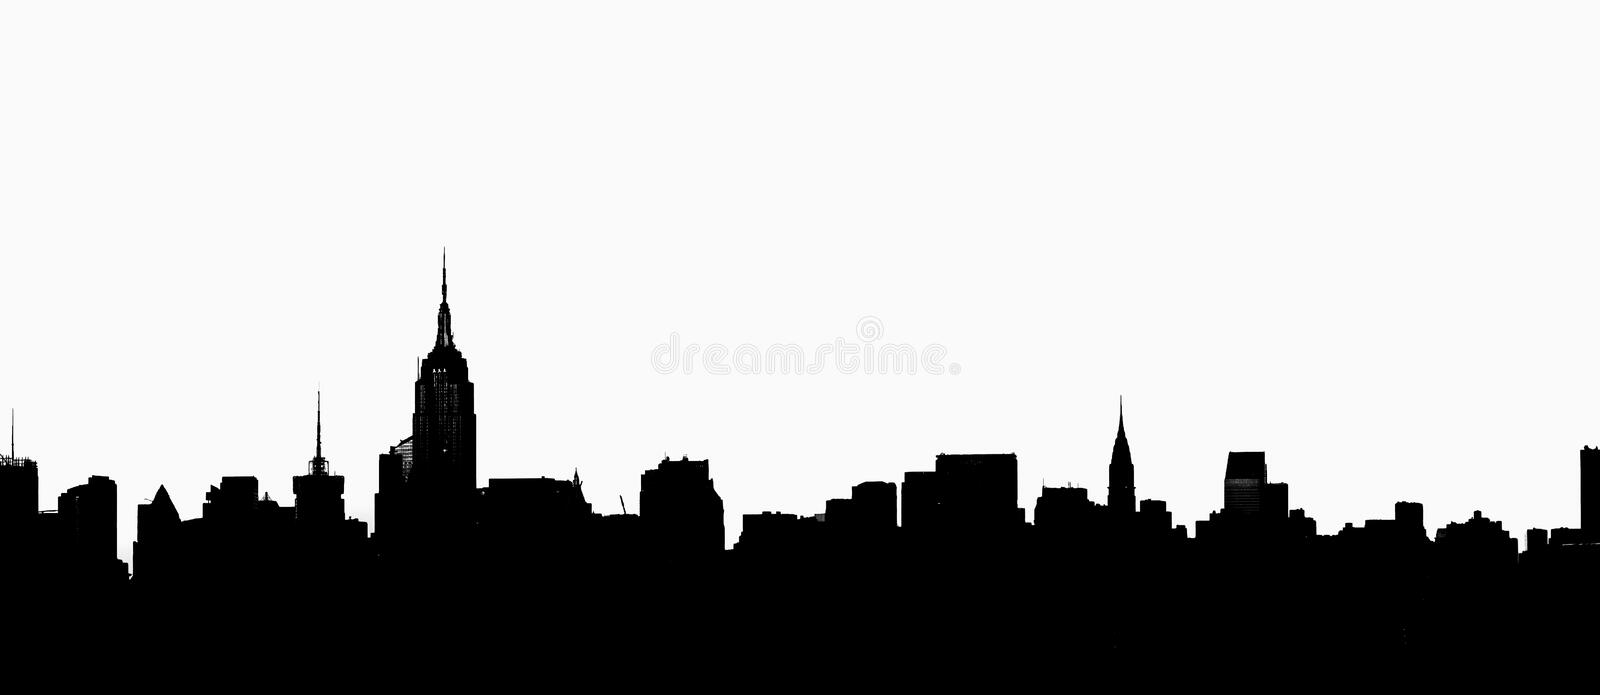 New York City Skyline in Profile. The New York City skyline in profile royalty free stock photo